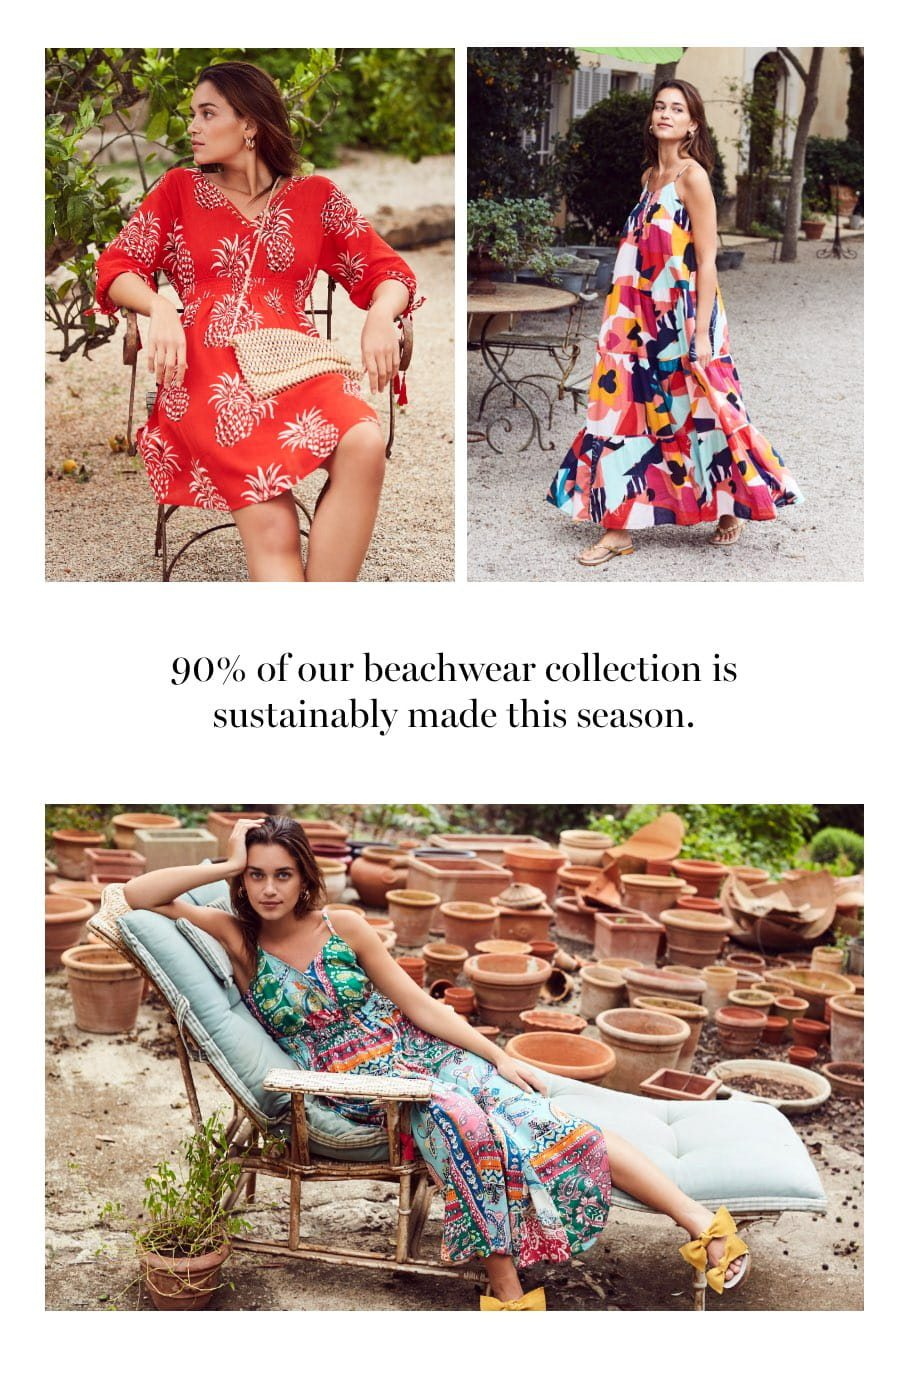 90% of our beachwear collection is sustainably made this season.